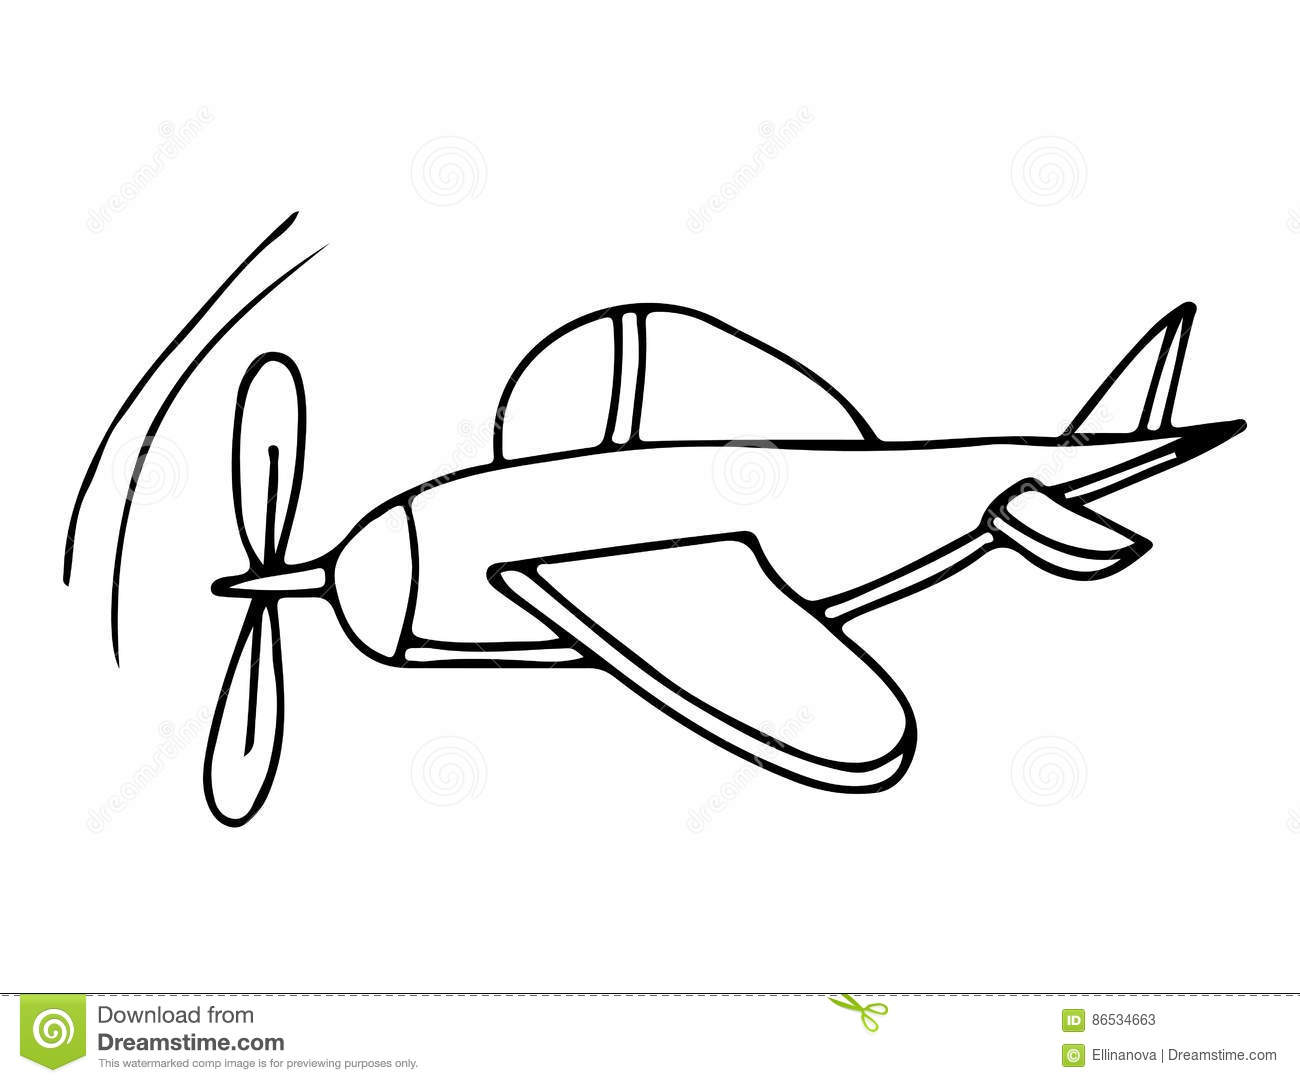 Black Line Airplane For Coloring Book Stock Vector - Illustration of ...